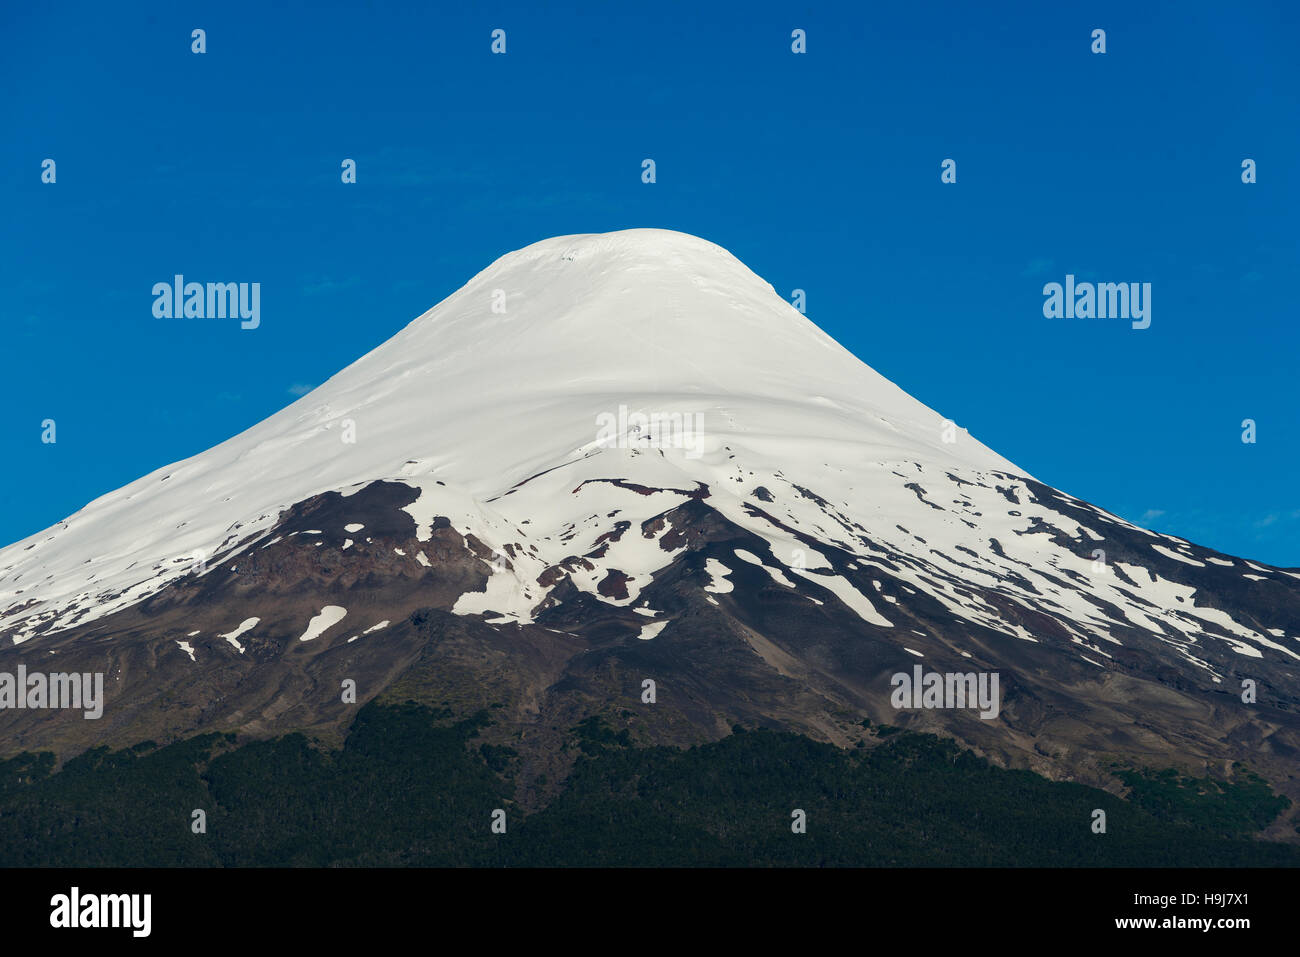 Osorno Volcano, The lakes Region, Chile. Volcán Osorno, Region de los Lagos, Chile. - Stock Image